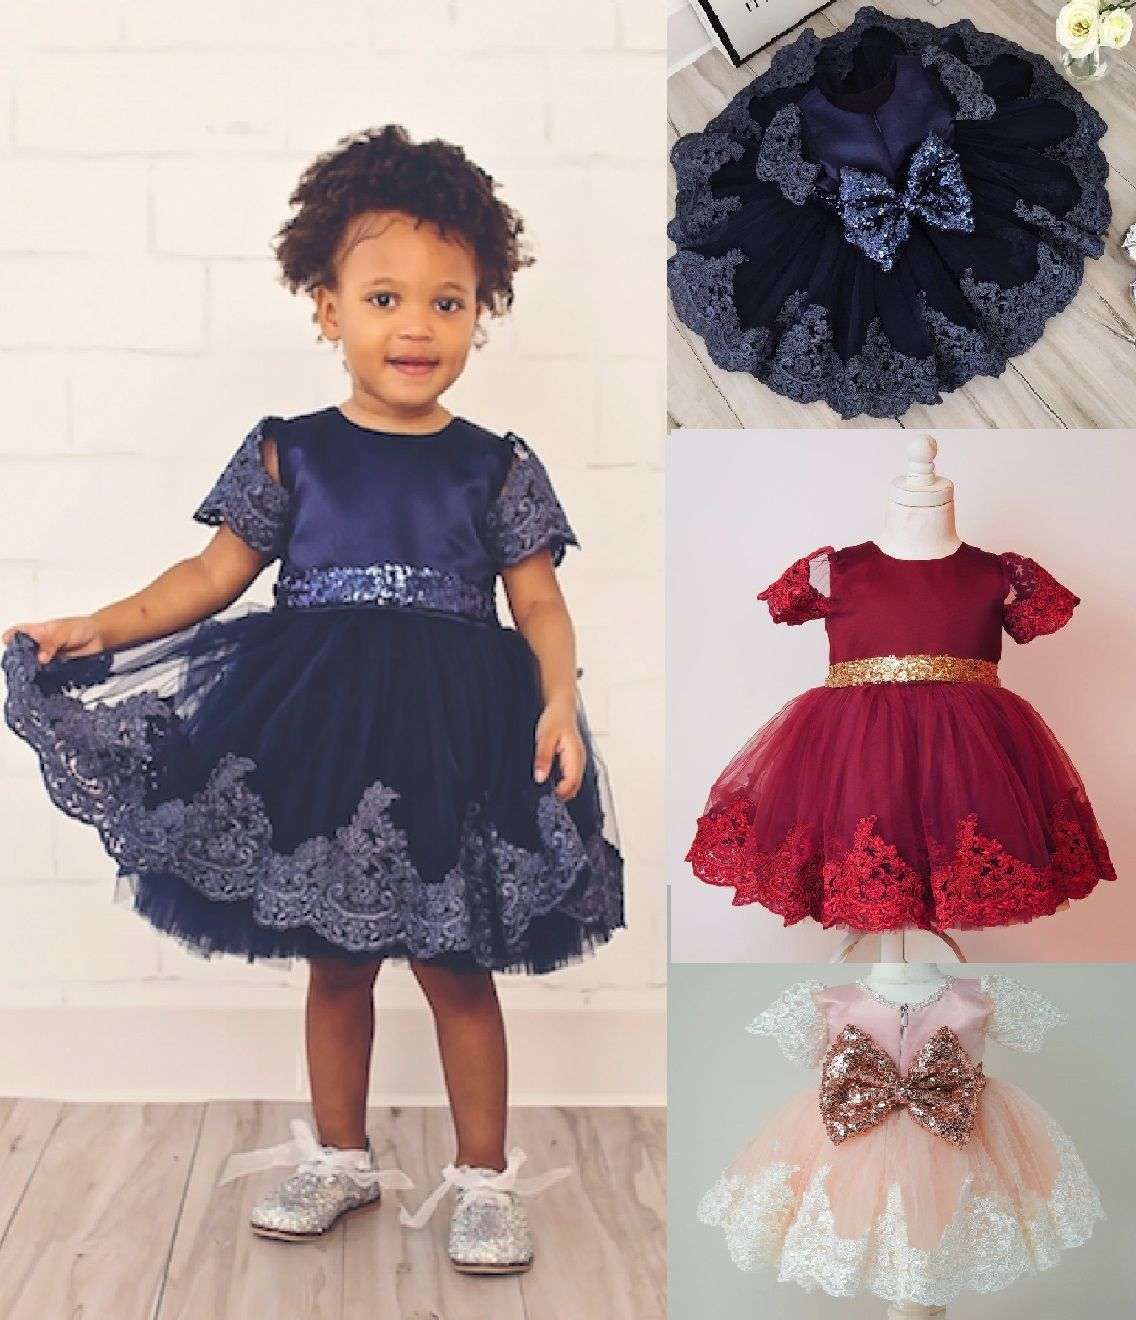 2017 New Baby Girls Princess Dress Clothes Short Sleeve Lace Bow Ball Gown Tutu Party Dress Toddler Kids Fancy Dress 0-7Y children girl clothes 2018 princess dress clothes bow ball gown tutu party dress 4 6 8 10 12 14 years teenage kids fancy dress